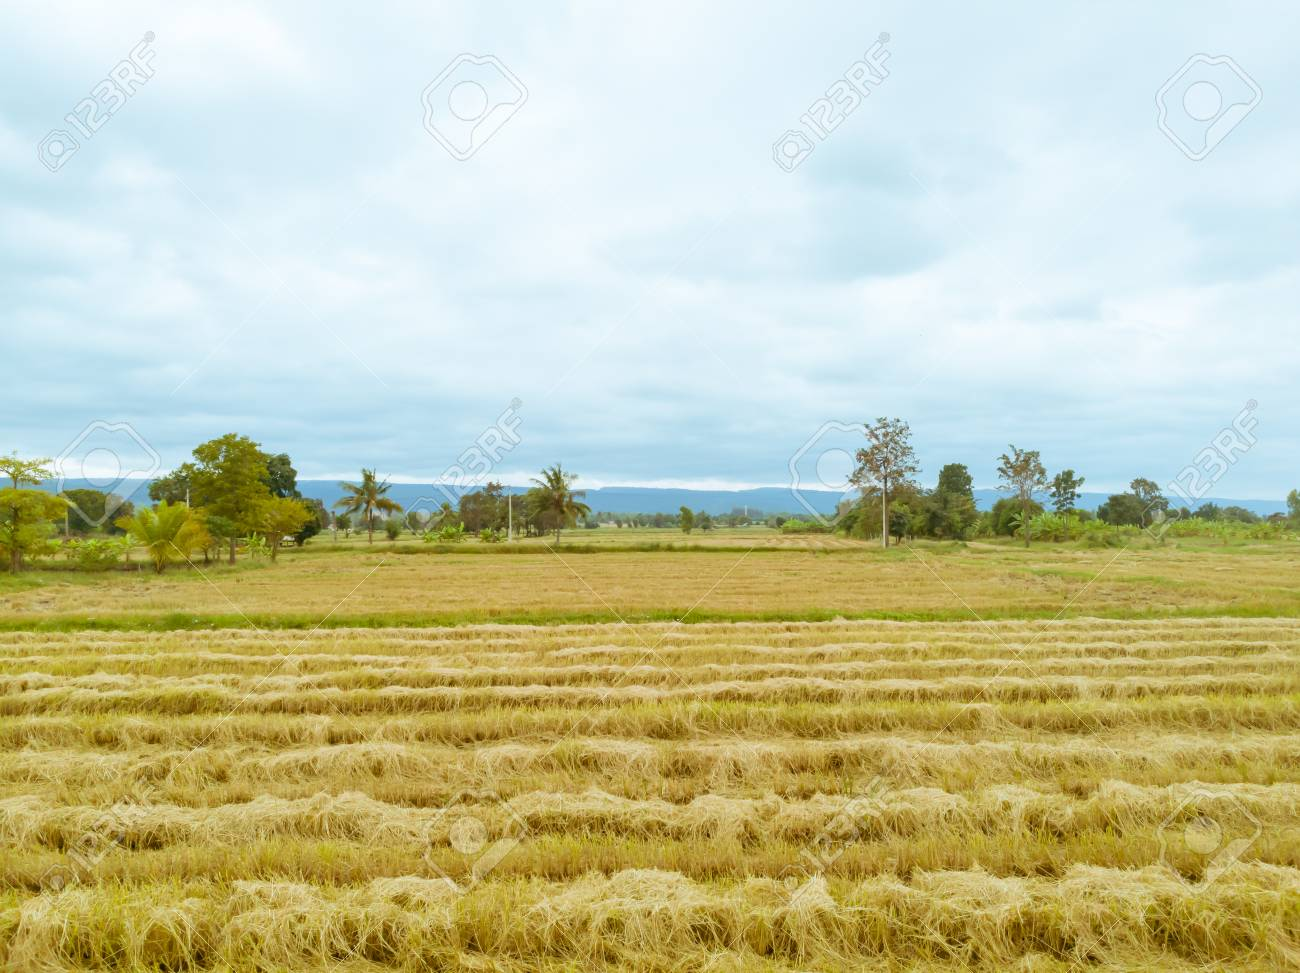 Rice paddy field after harvest season in Thailand against cloudy blue sky - 106266835